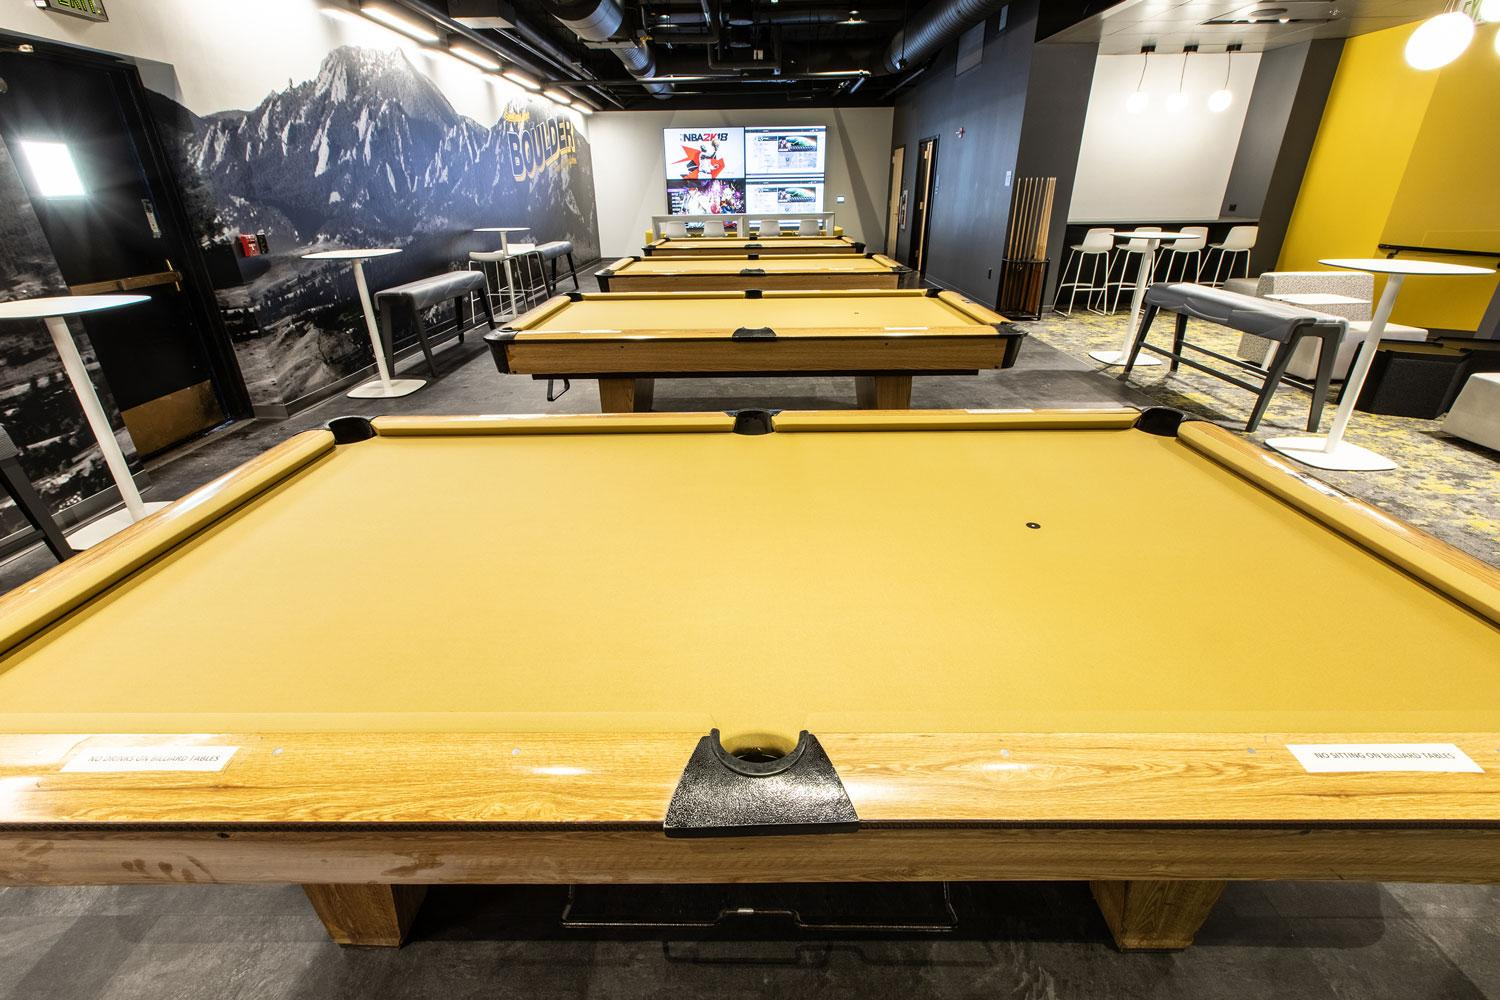 The Connection renovated pool tables